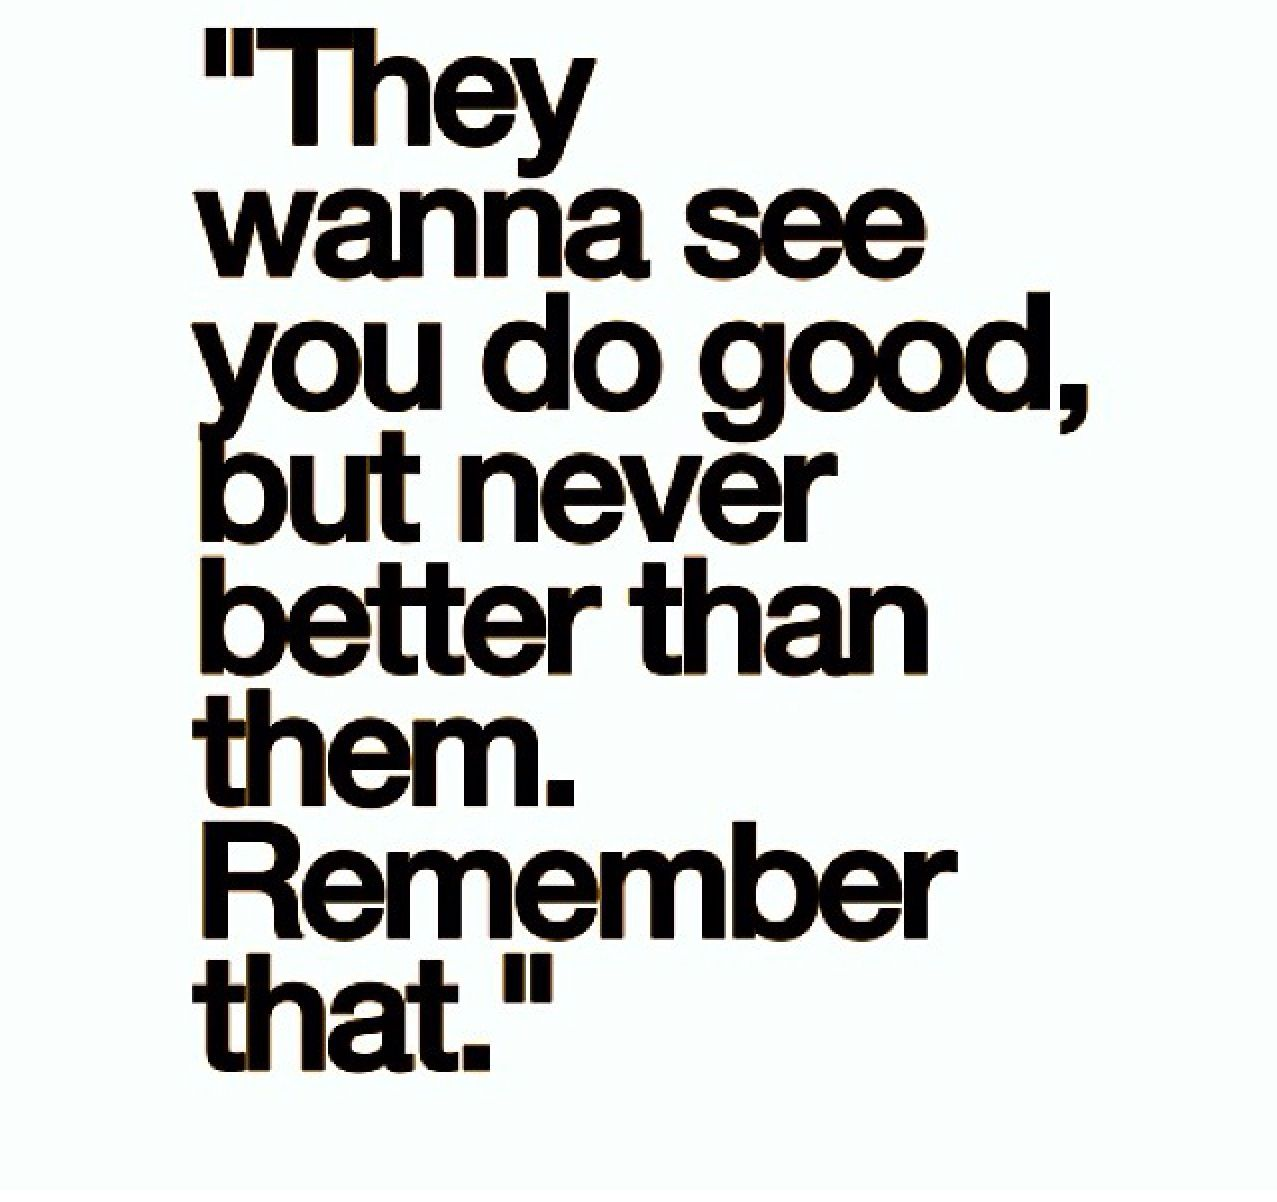 Remember that....